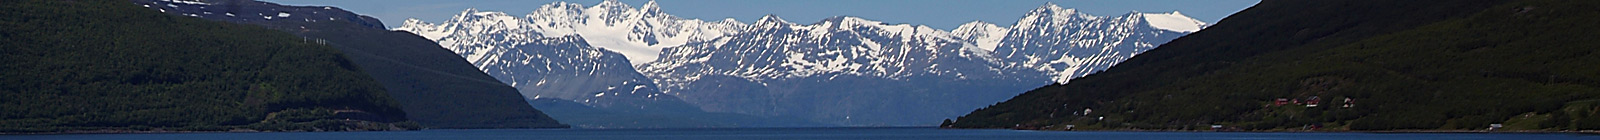 Norway and snowy mountains and fjord - Banner